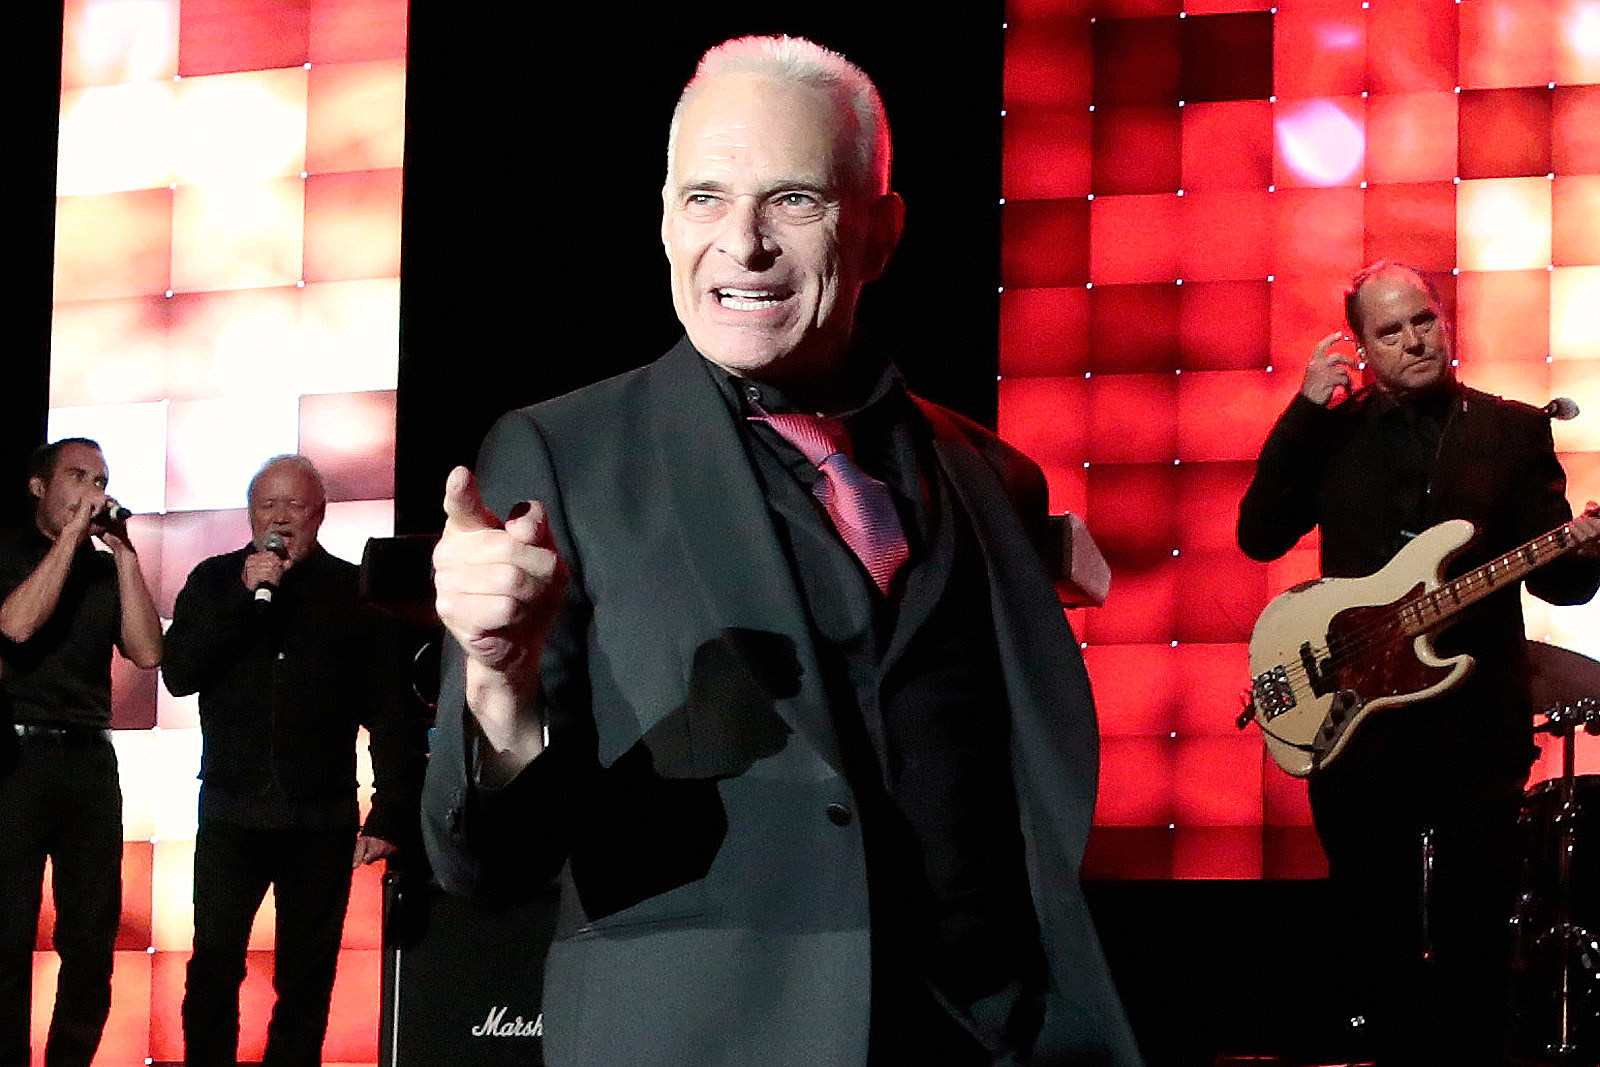 David Lee Roth Aims for New Las Vegas Residency